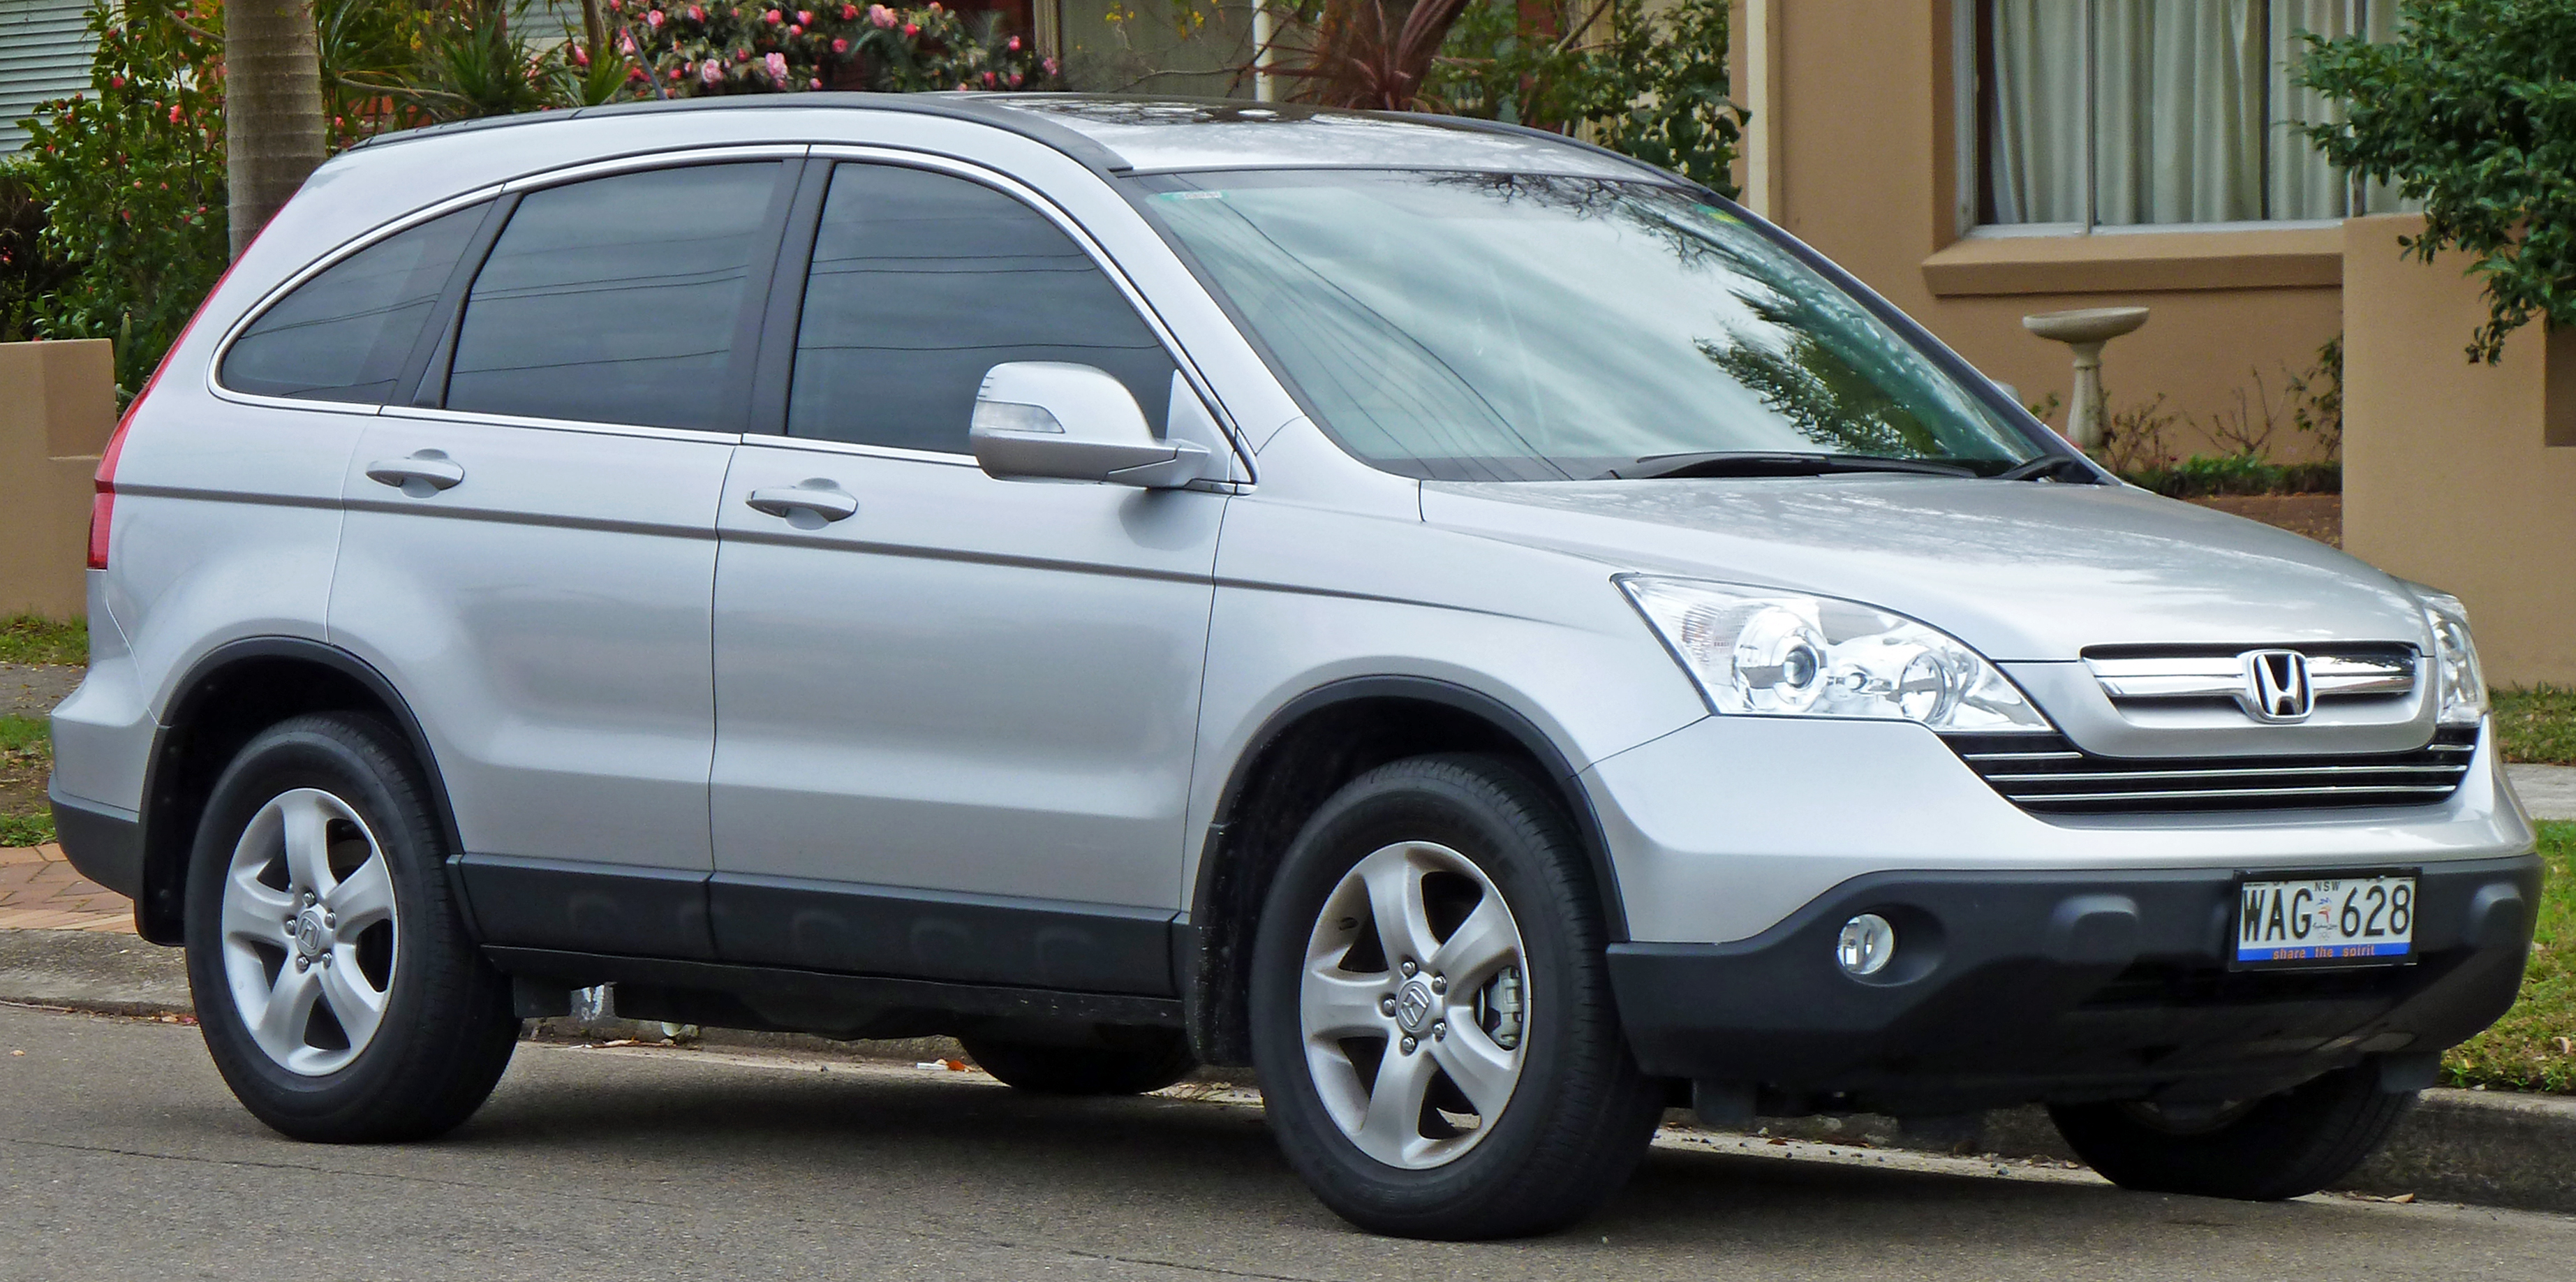 Pictures of honda cr-v iii (re5) 2014